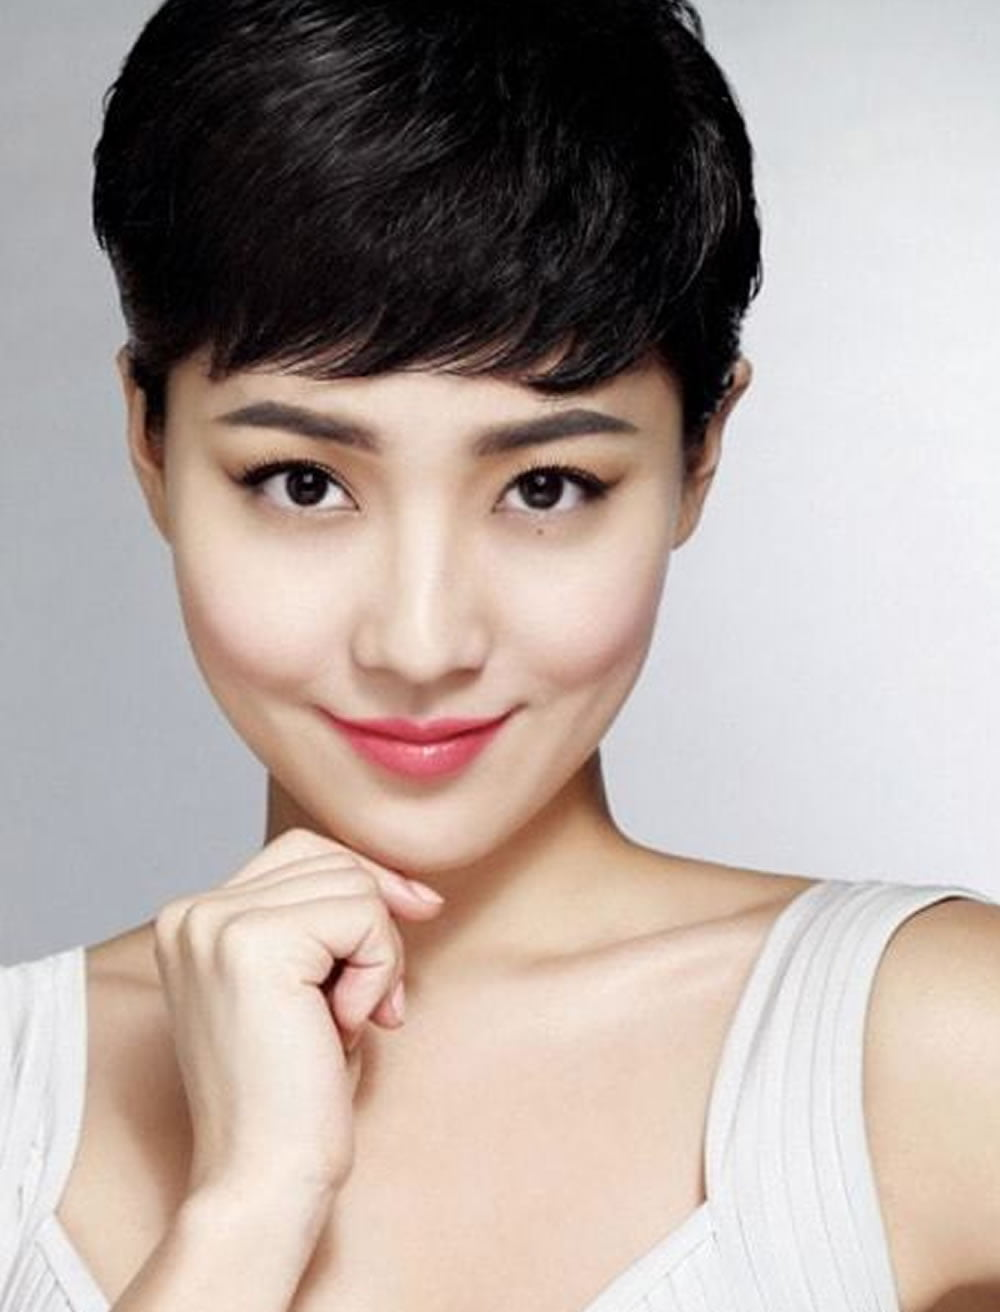 50 Glorious Short Hairstyles for Asian Women for Summer Days 2018-2019 – Page 2 ...